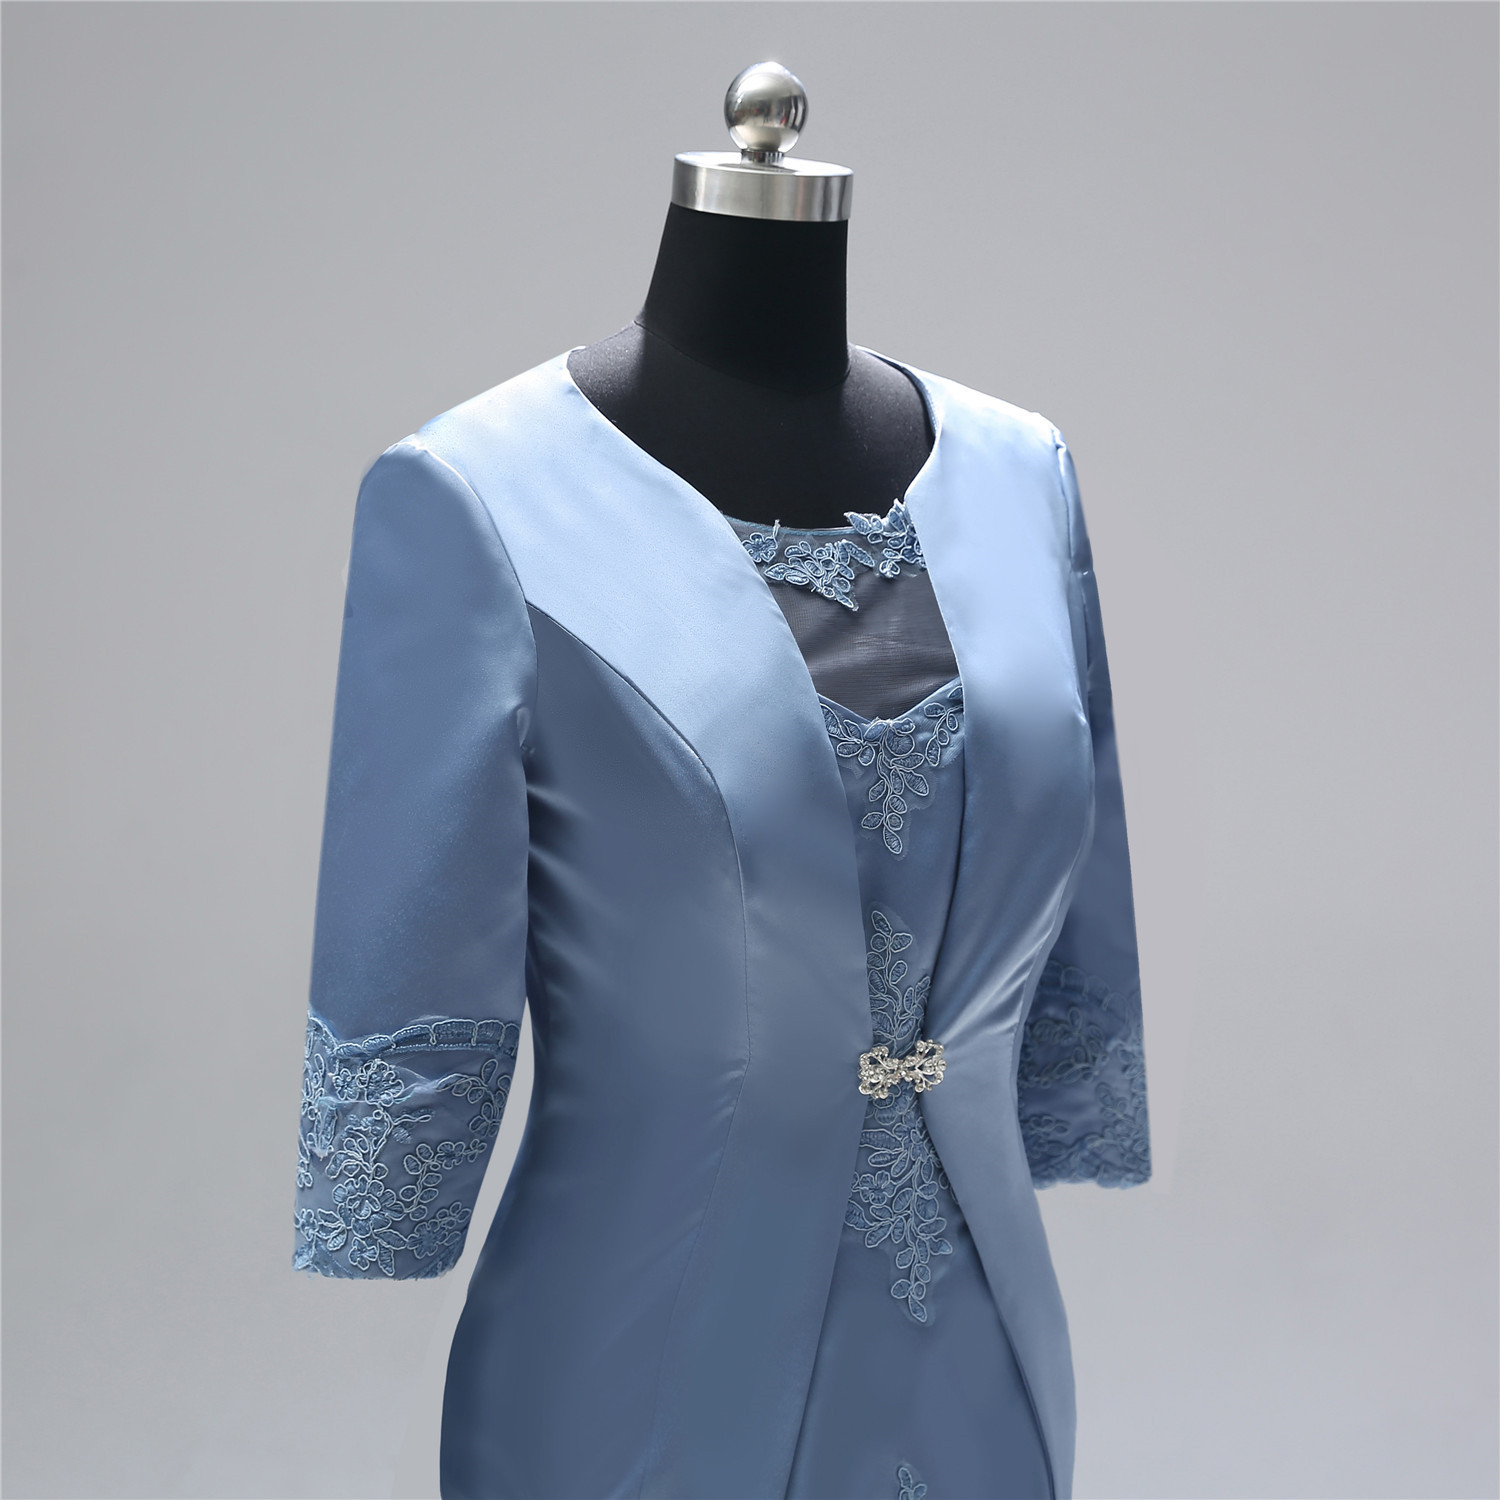 tailor shop custom made lady suit china tailor mother of the bride dresses with jacket  bride mother dress  wedding dress mother